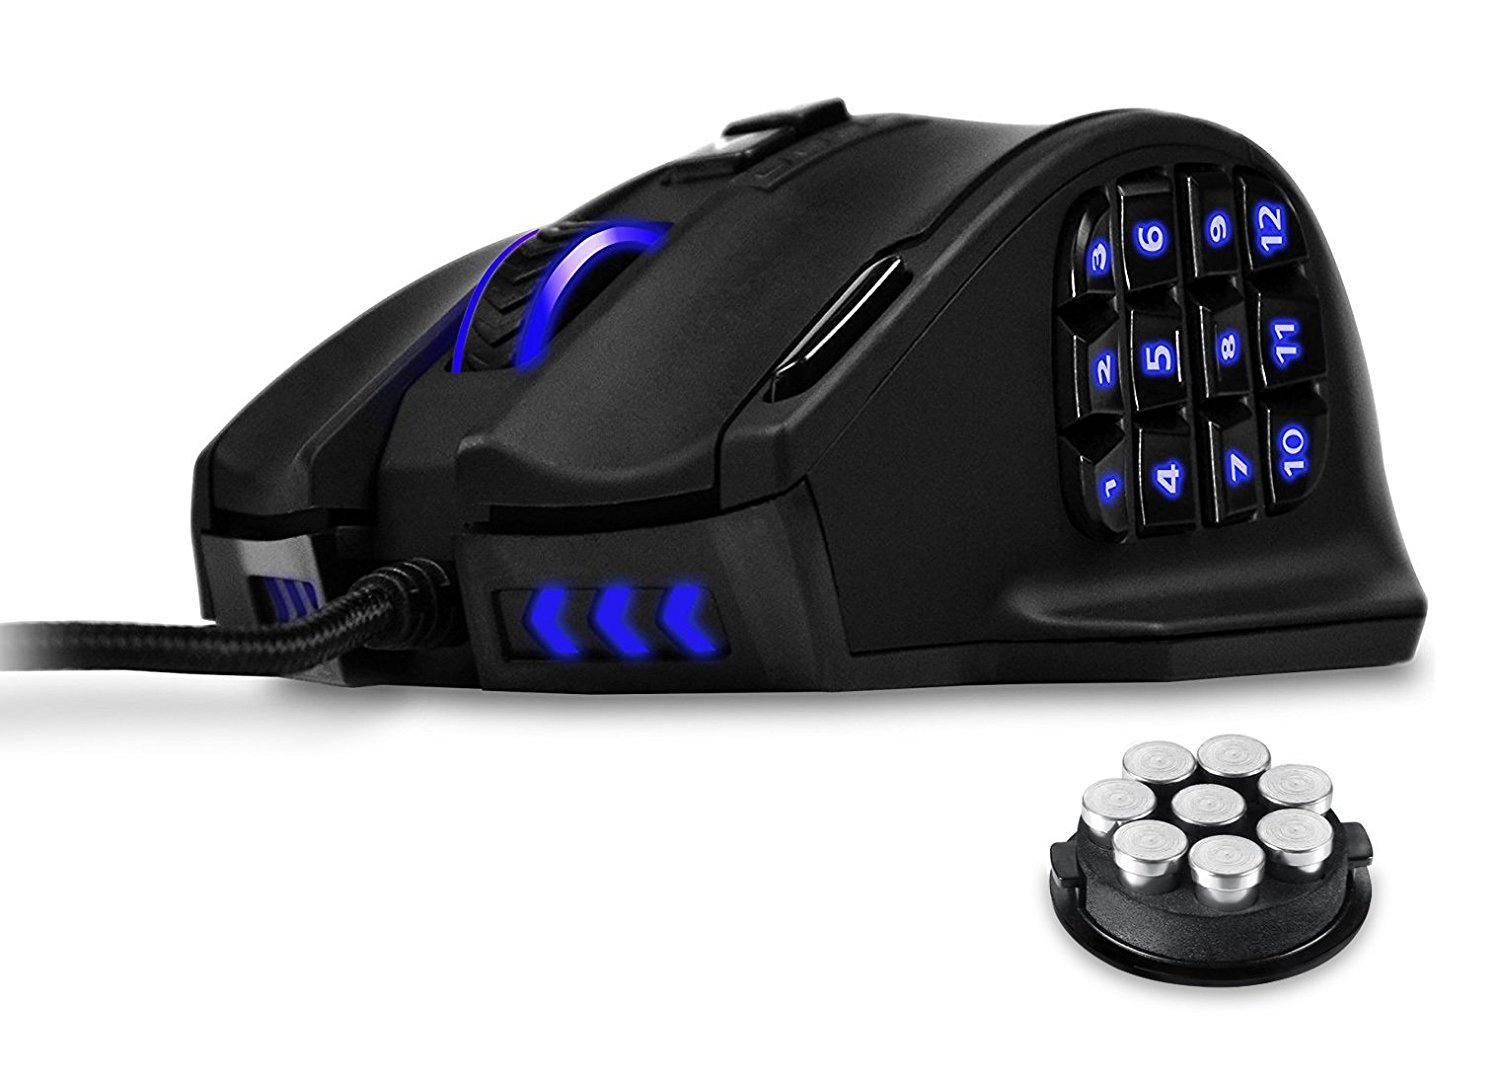 UtechSmart Venus 16400 DPI High Precision Laser MMO Gaming Mouse by UtechSmart (Image #1)